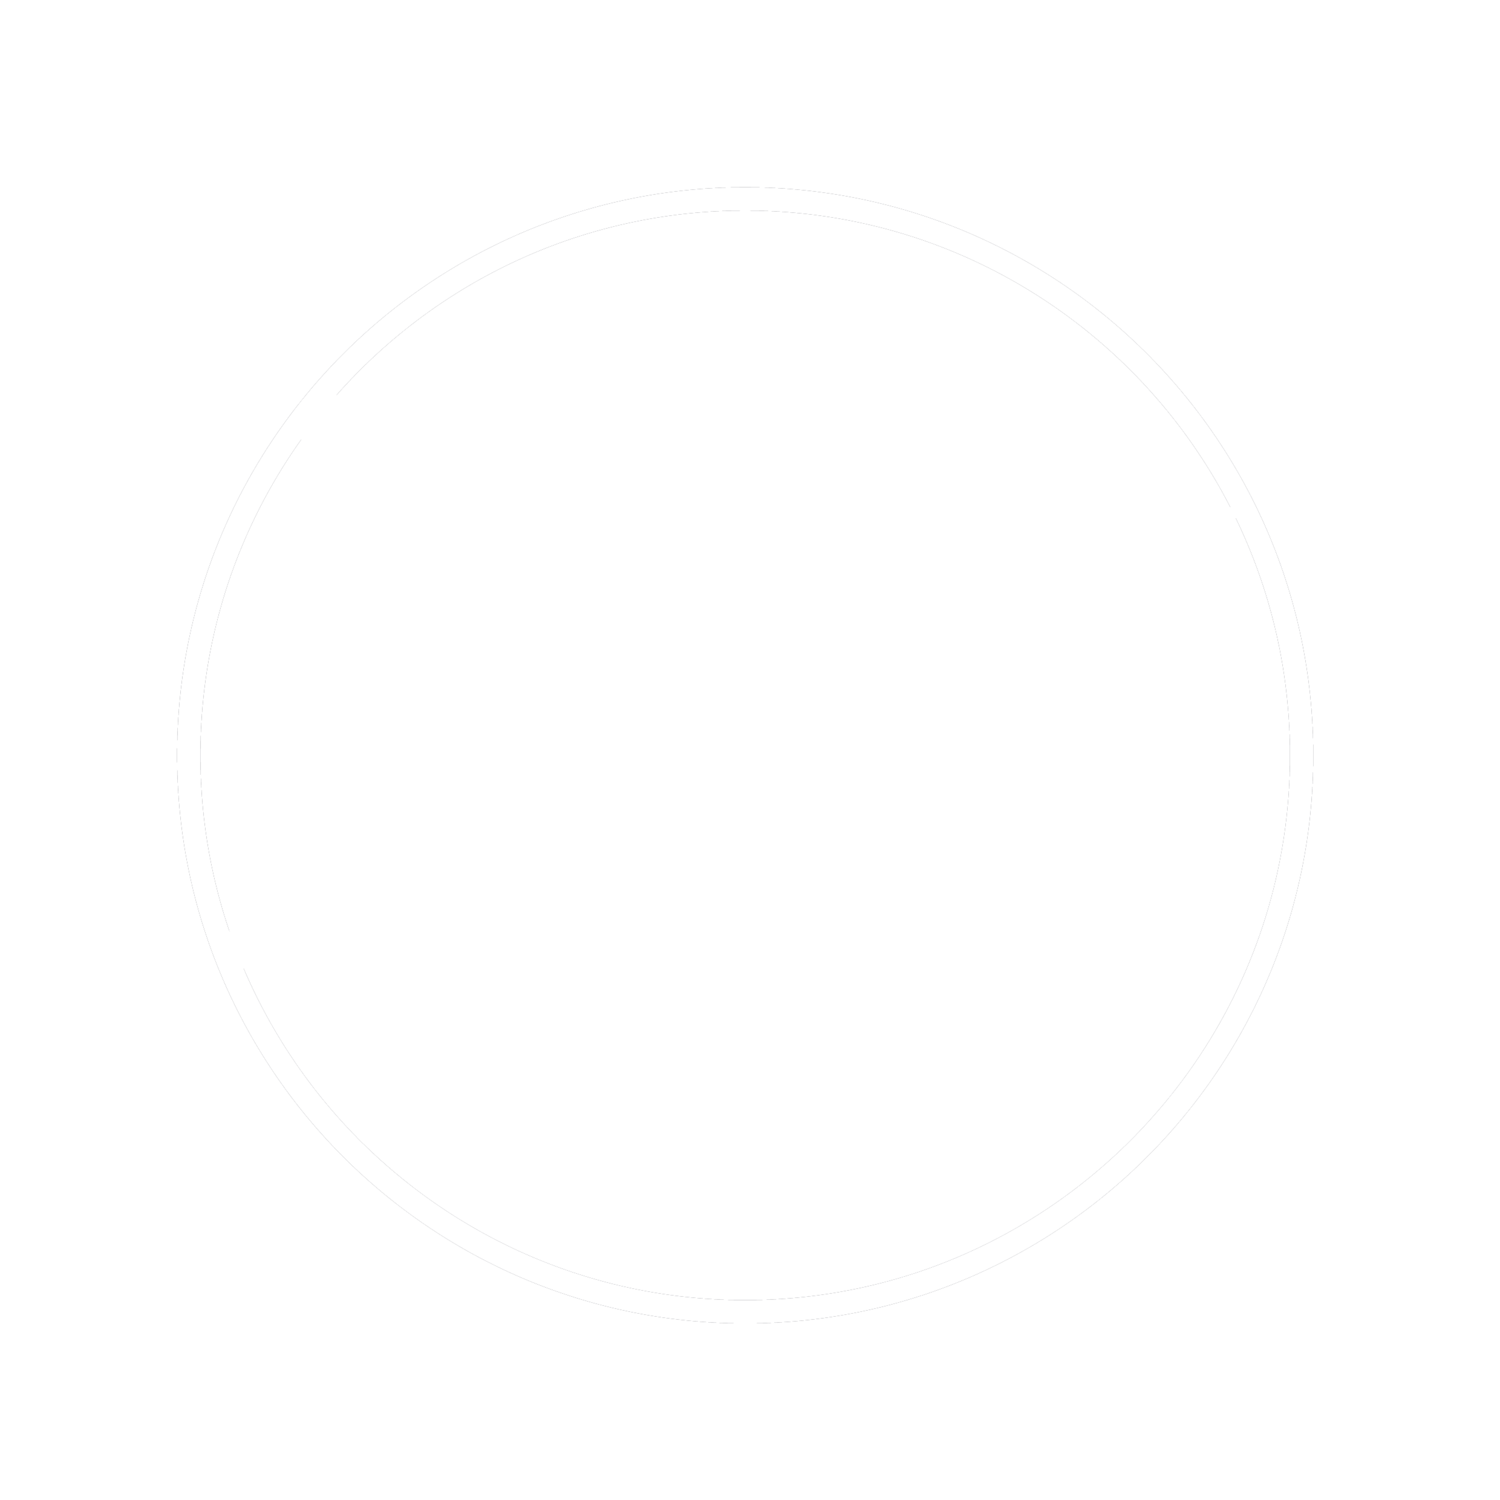 Merton Instrument Making Association (MIMA)